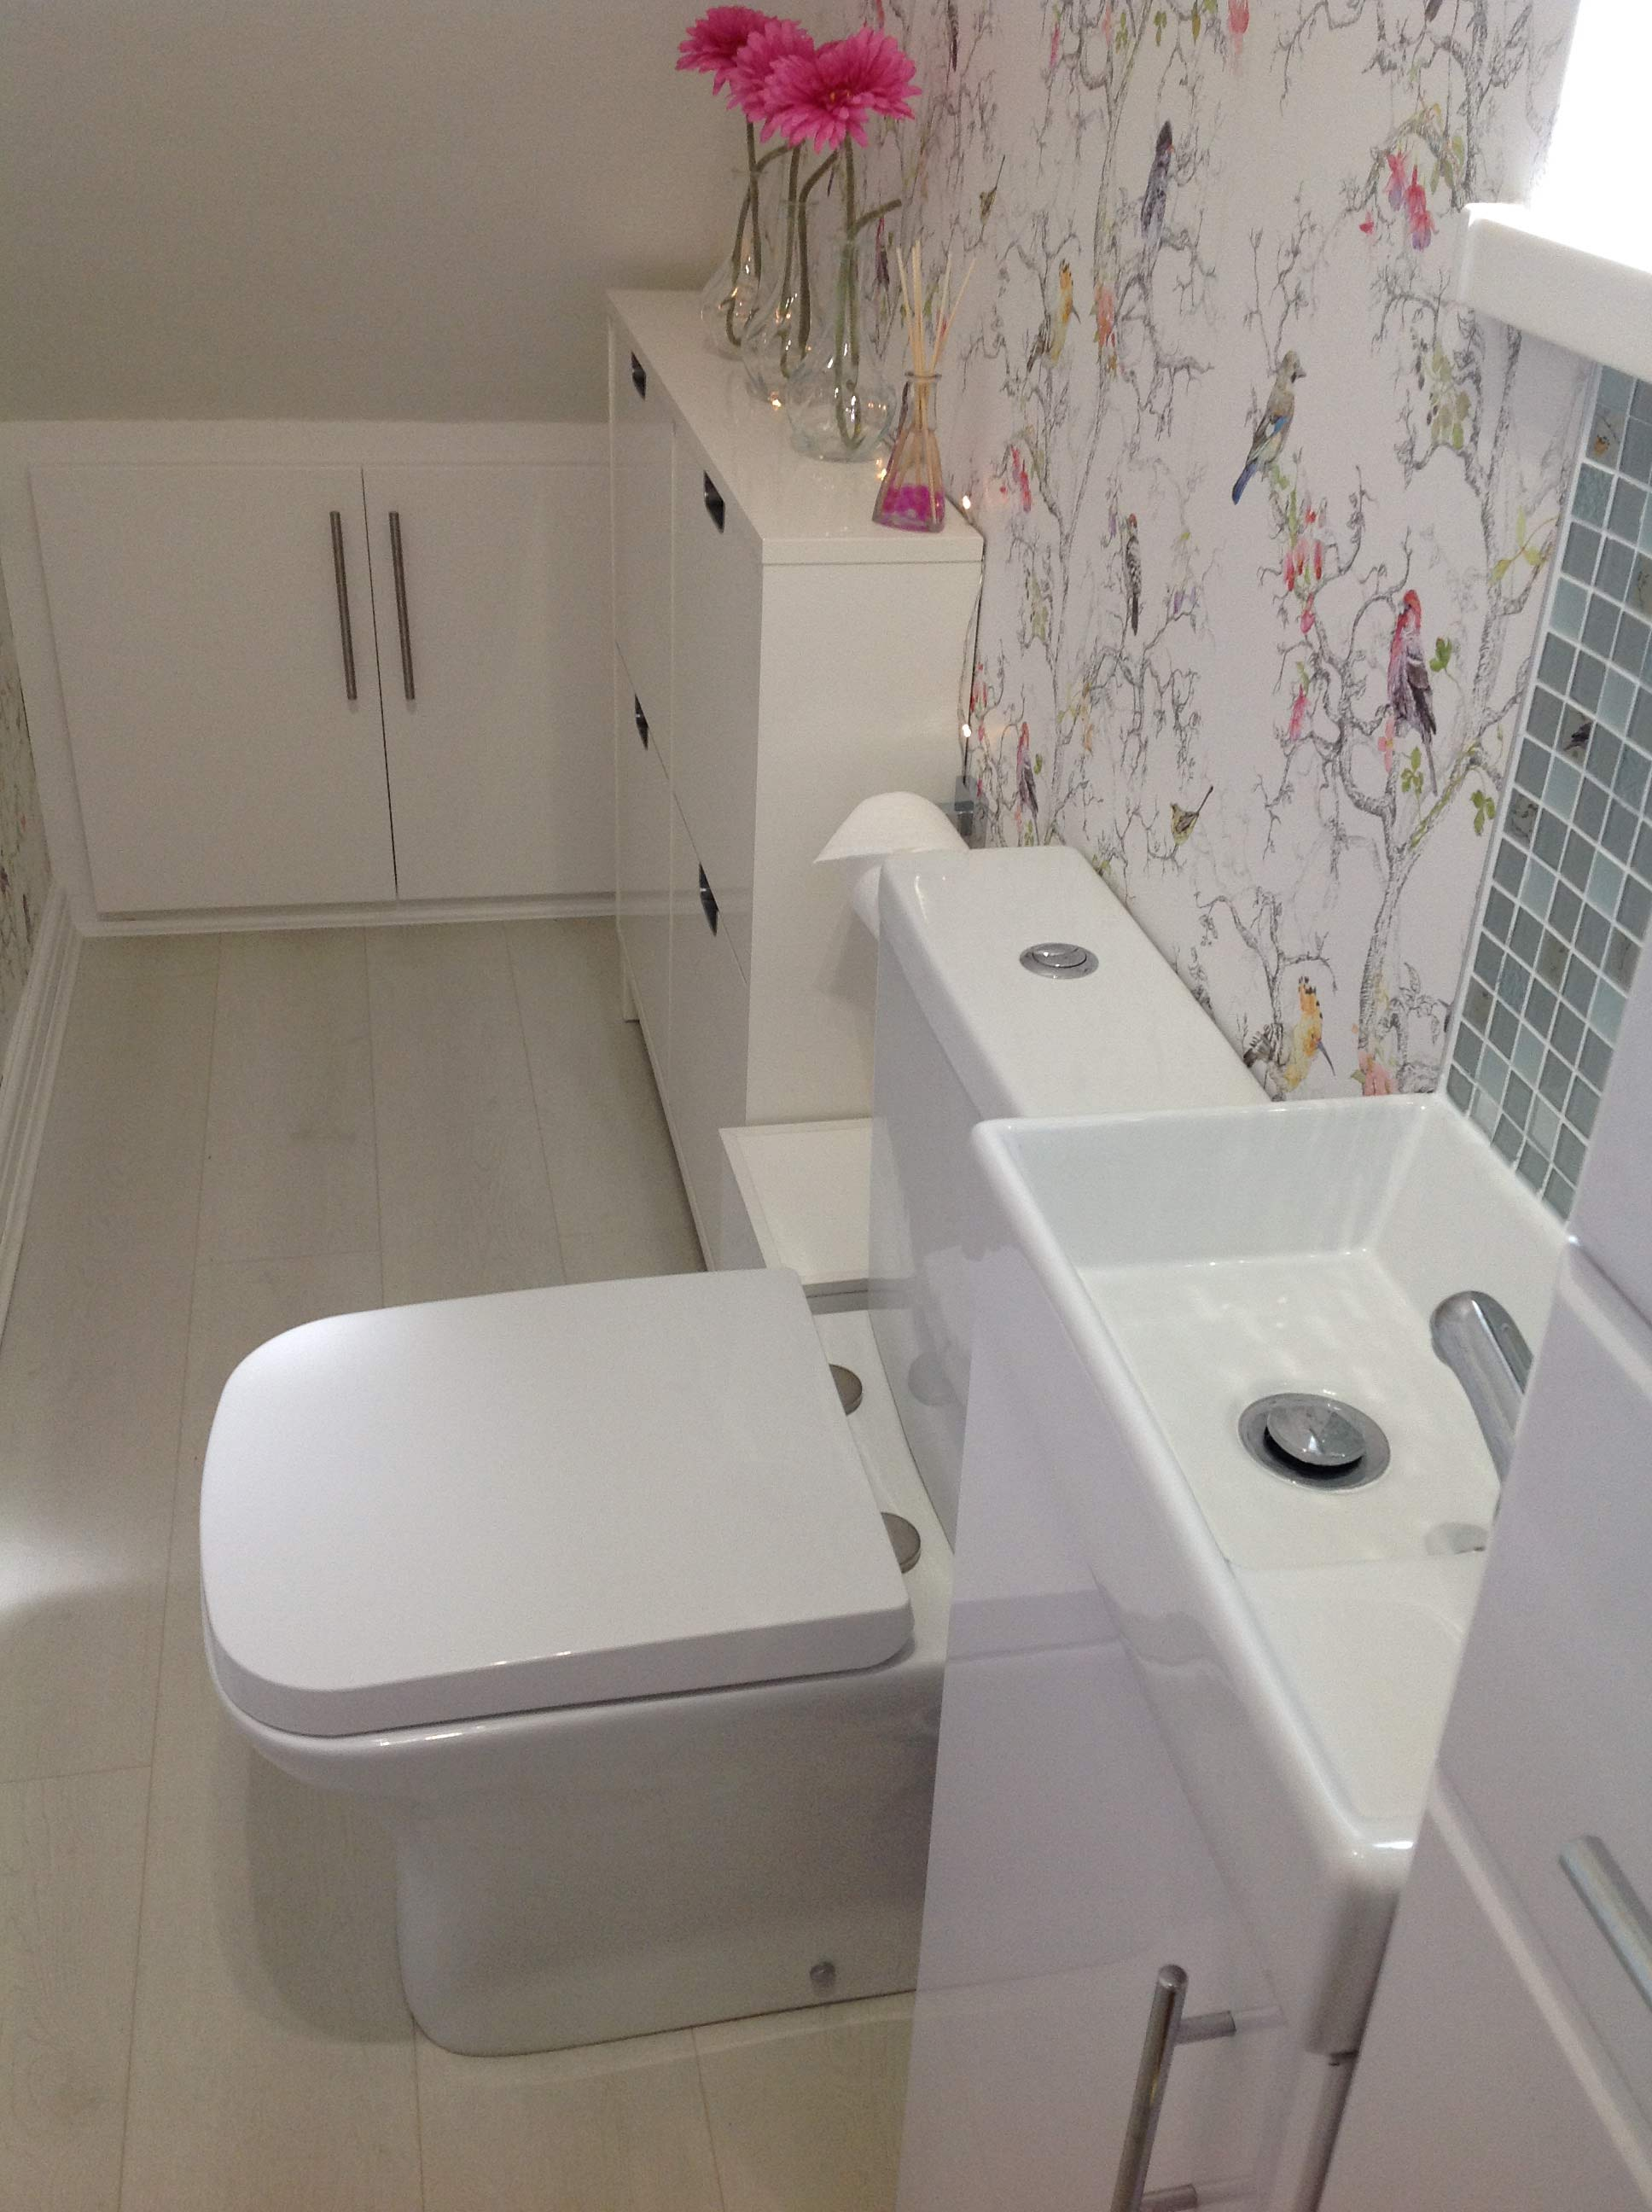 Tracey's short projection toilet and tall boy bathroom cabinet | Tracey's Under Stairs Bathroom - Barnoldswick, Lancashire